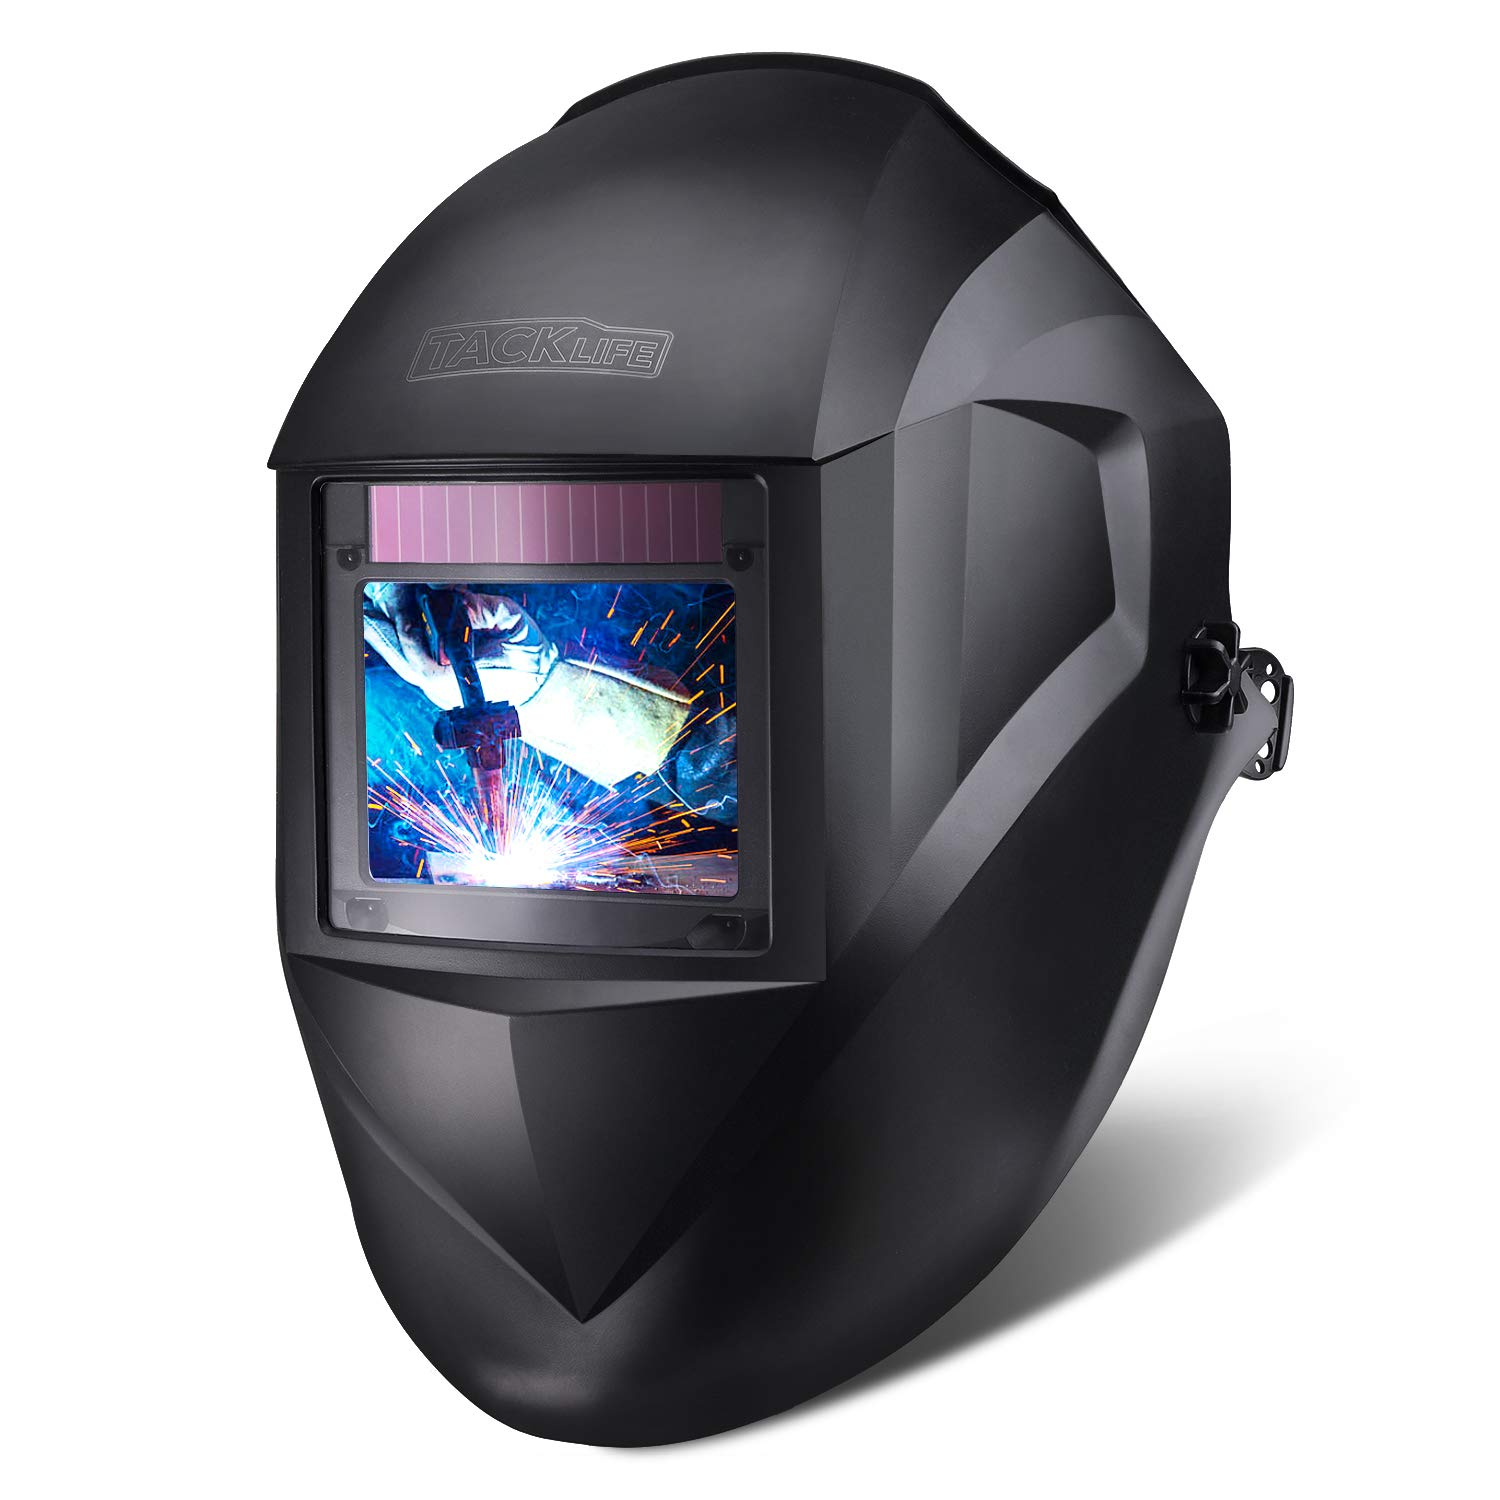 """TACKLIFE Welding Helmet, Large Viewing Area(3.94""""x2.87""""), Top Optical Clarity (1/1/1/1), Wide Shade Range DIN 3/3-8/9-13, Solar Power Auto"""